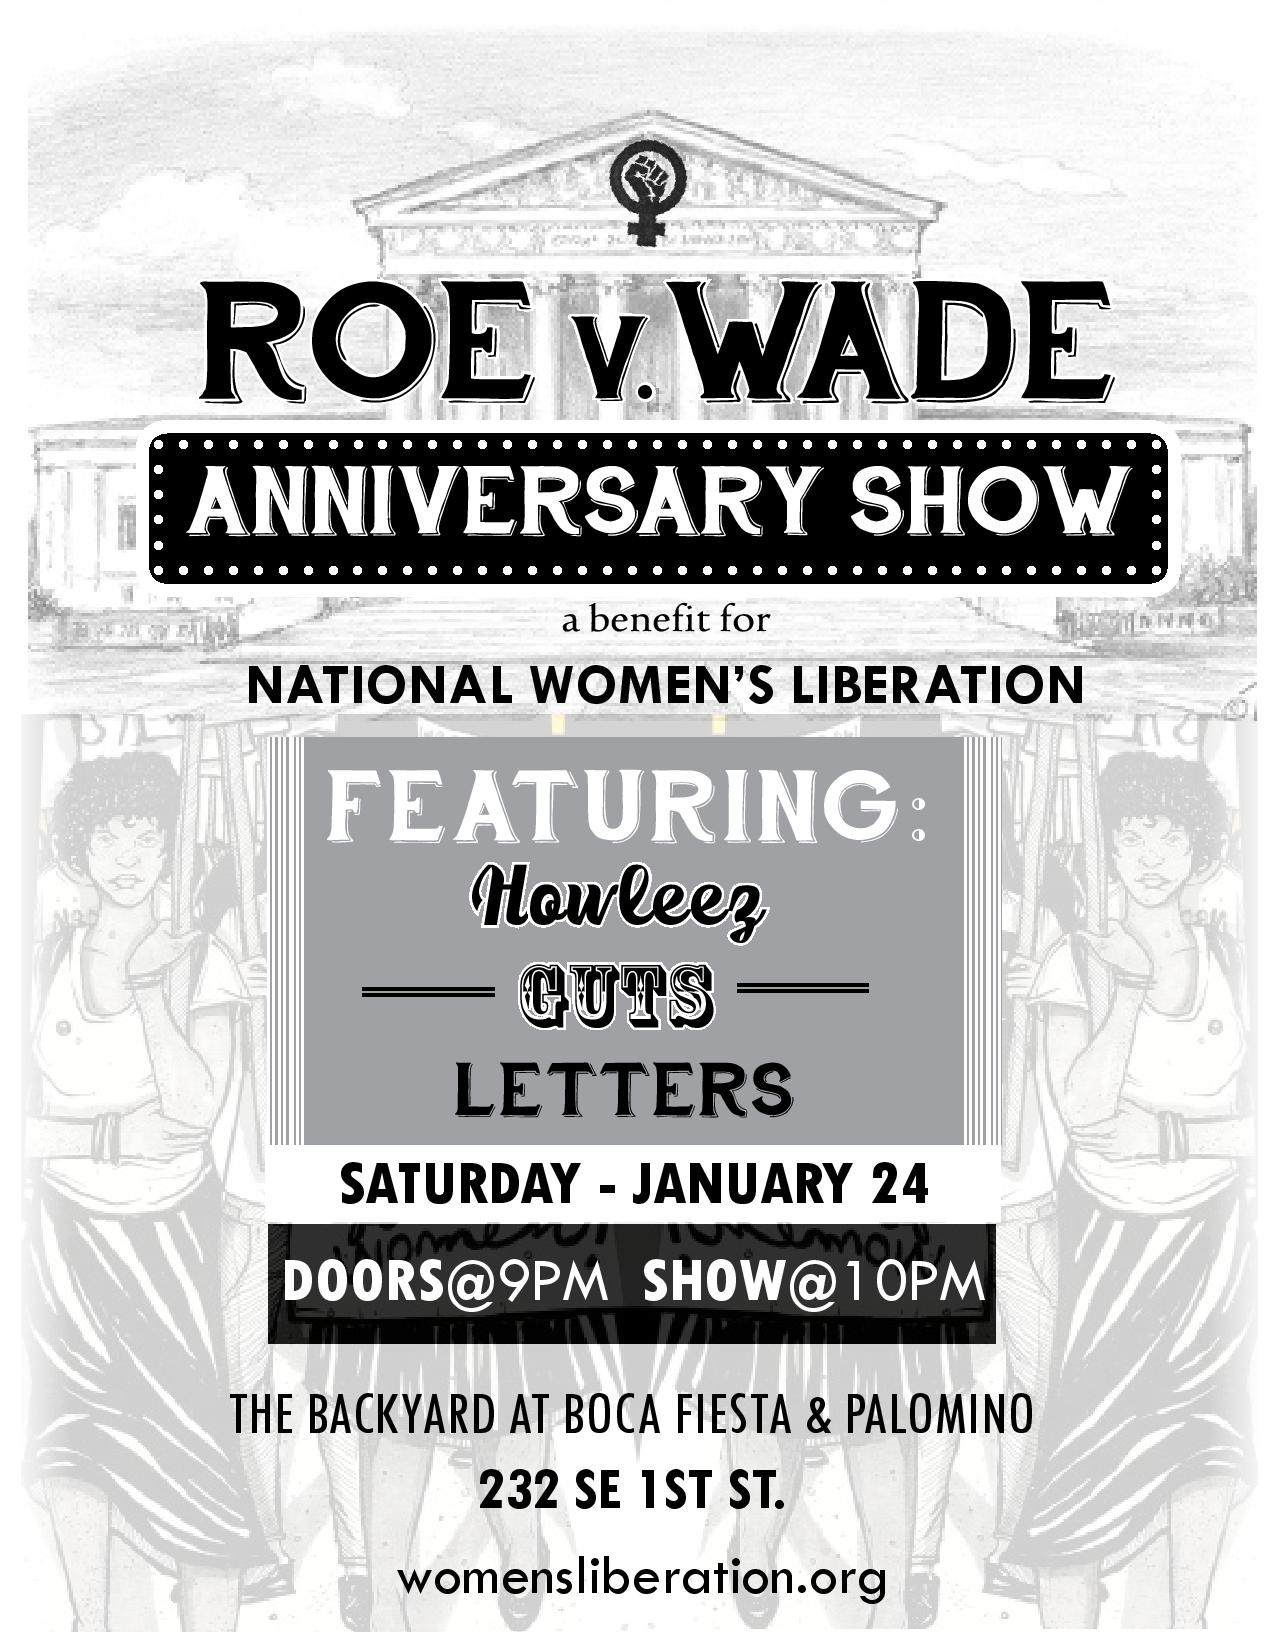 Roe.Show.2015.flyer